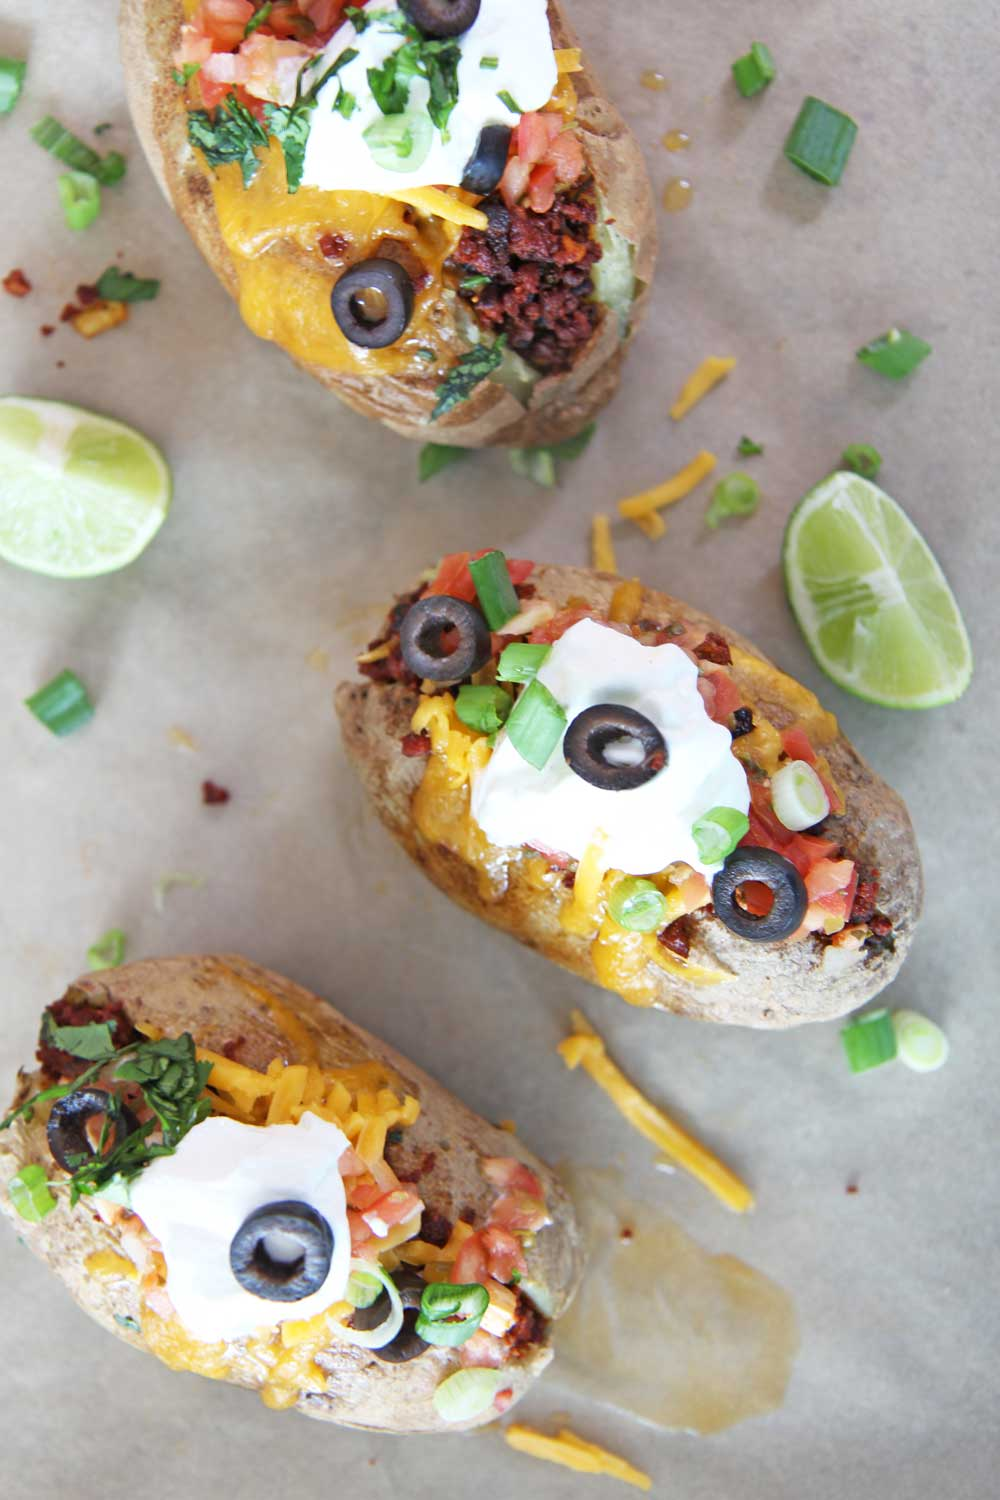 Baked Potato Tacos. Bake the potatoes in the microwave and add cheese, sour cream, chorizo, and salsa. Super easy Taco Tuesday dinner that is also a low carb taco. www.ChopHappy.com #tacoTuesday #tacos